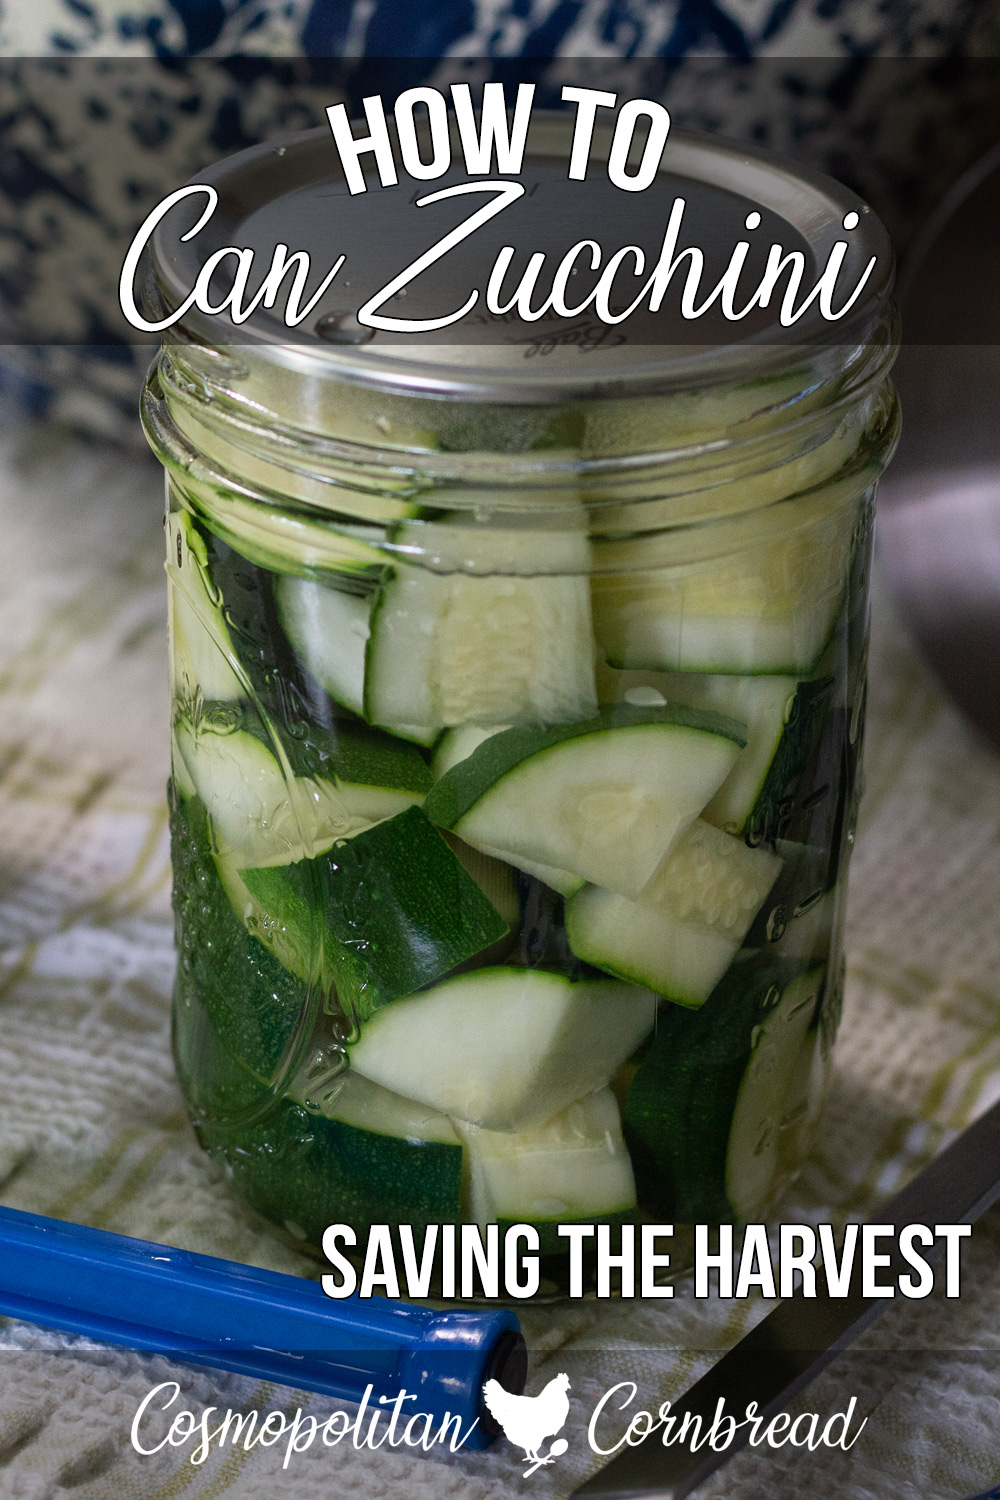 How to Can Zucchini (Summer Squash) from your garden.